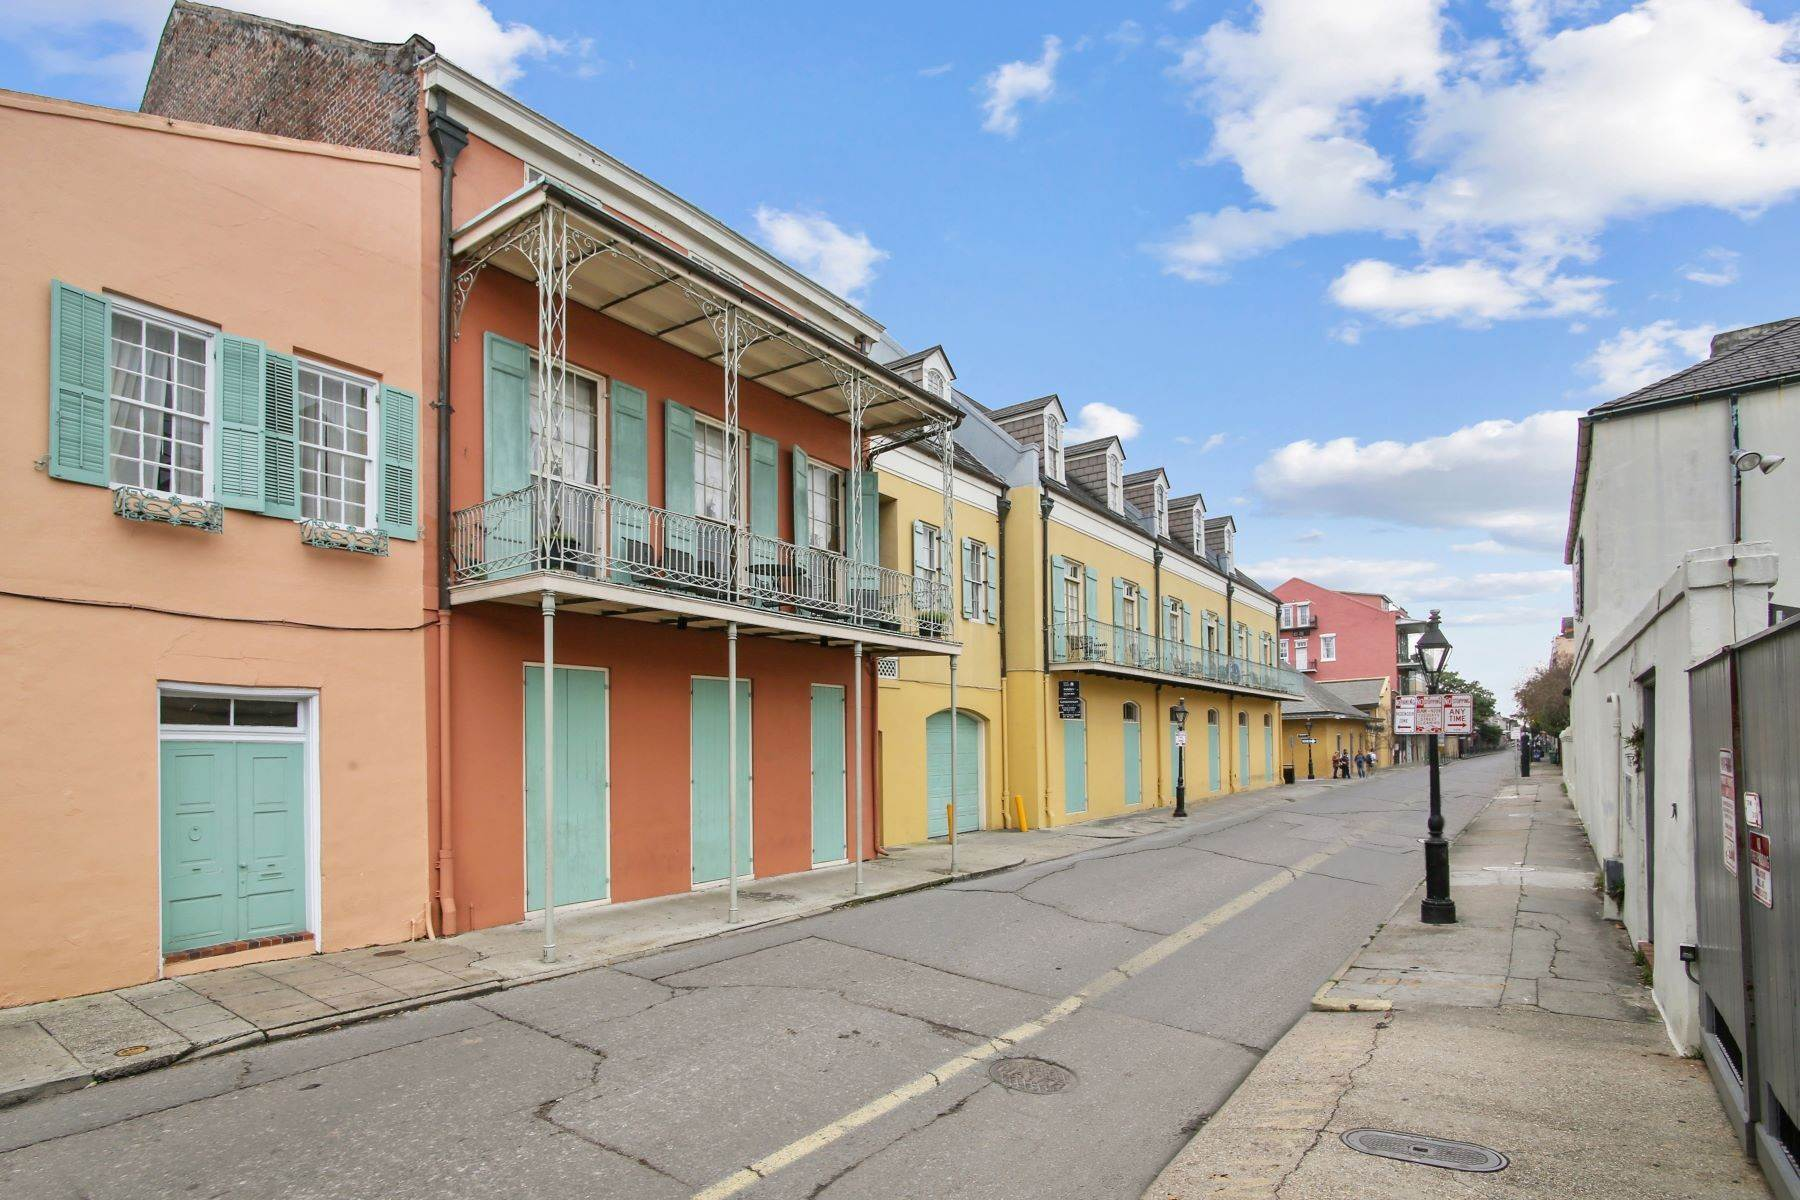 Condominiums for Sale at 1040 Chartres Street, C6 1040 Chartres St, C6 New Orleans, Louisiana 70116 United States